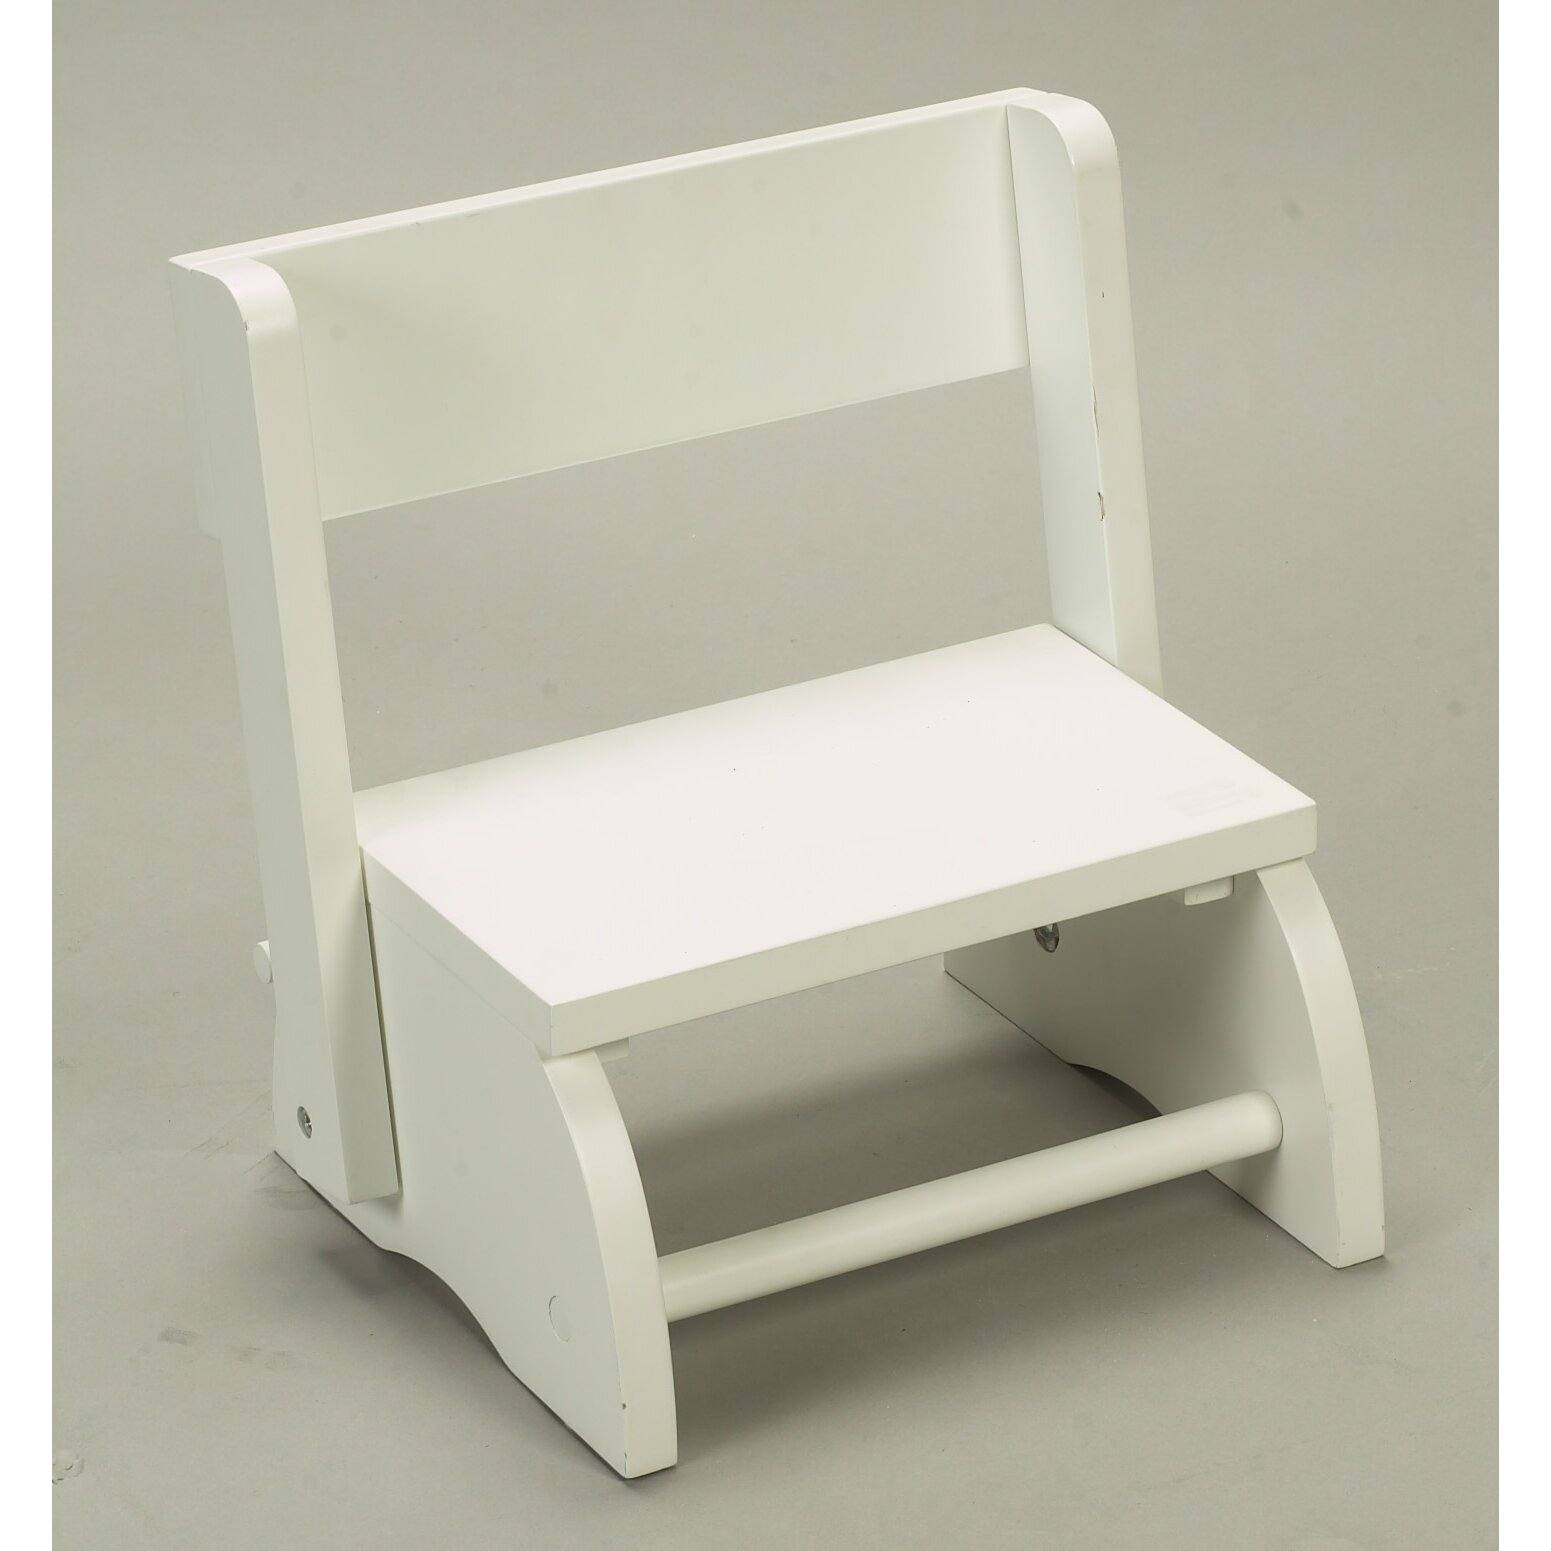 Gift Mark 1 Step Small Flip Step Stool With 70 Lb Load